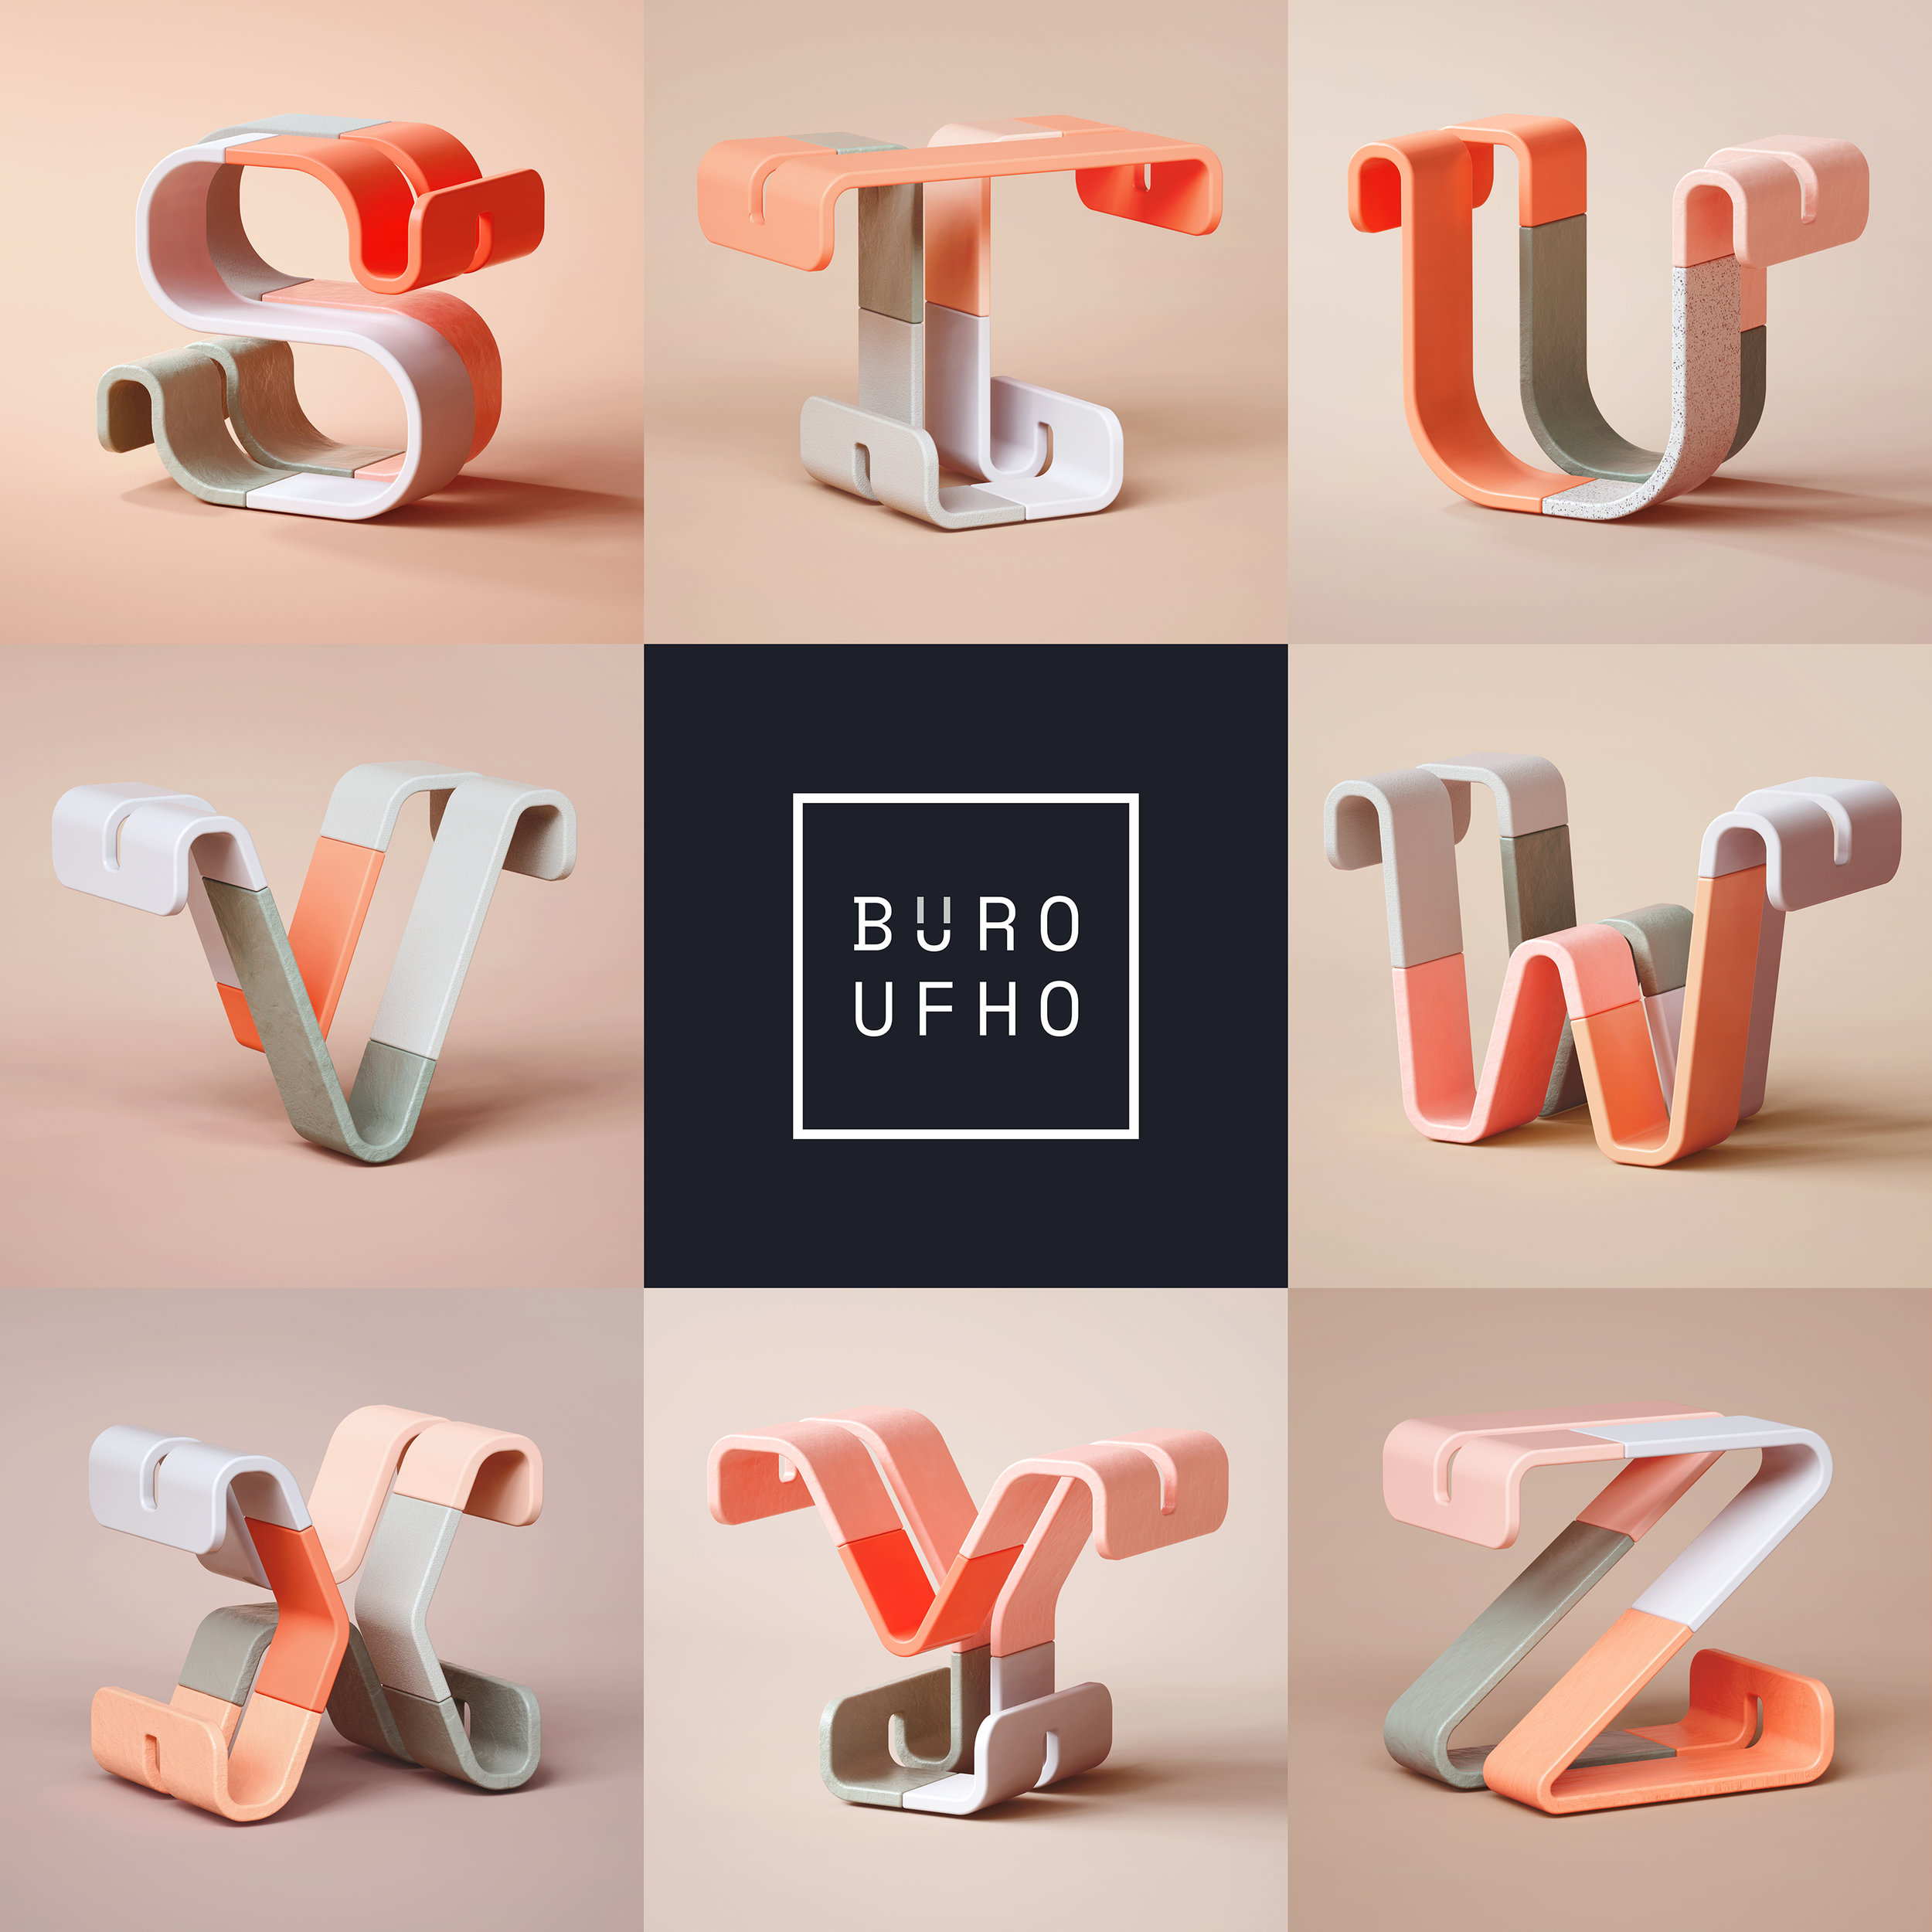 36 Days of Type 2019 - 3D Typeform letter V to Z visuals by Singapore based brand strategy and creative design consultancy, BÜRO UFHO.